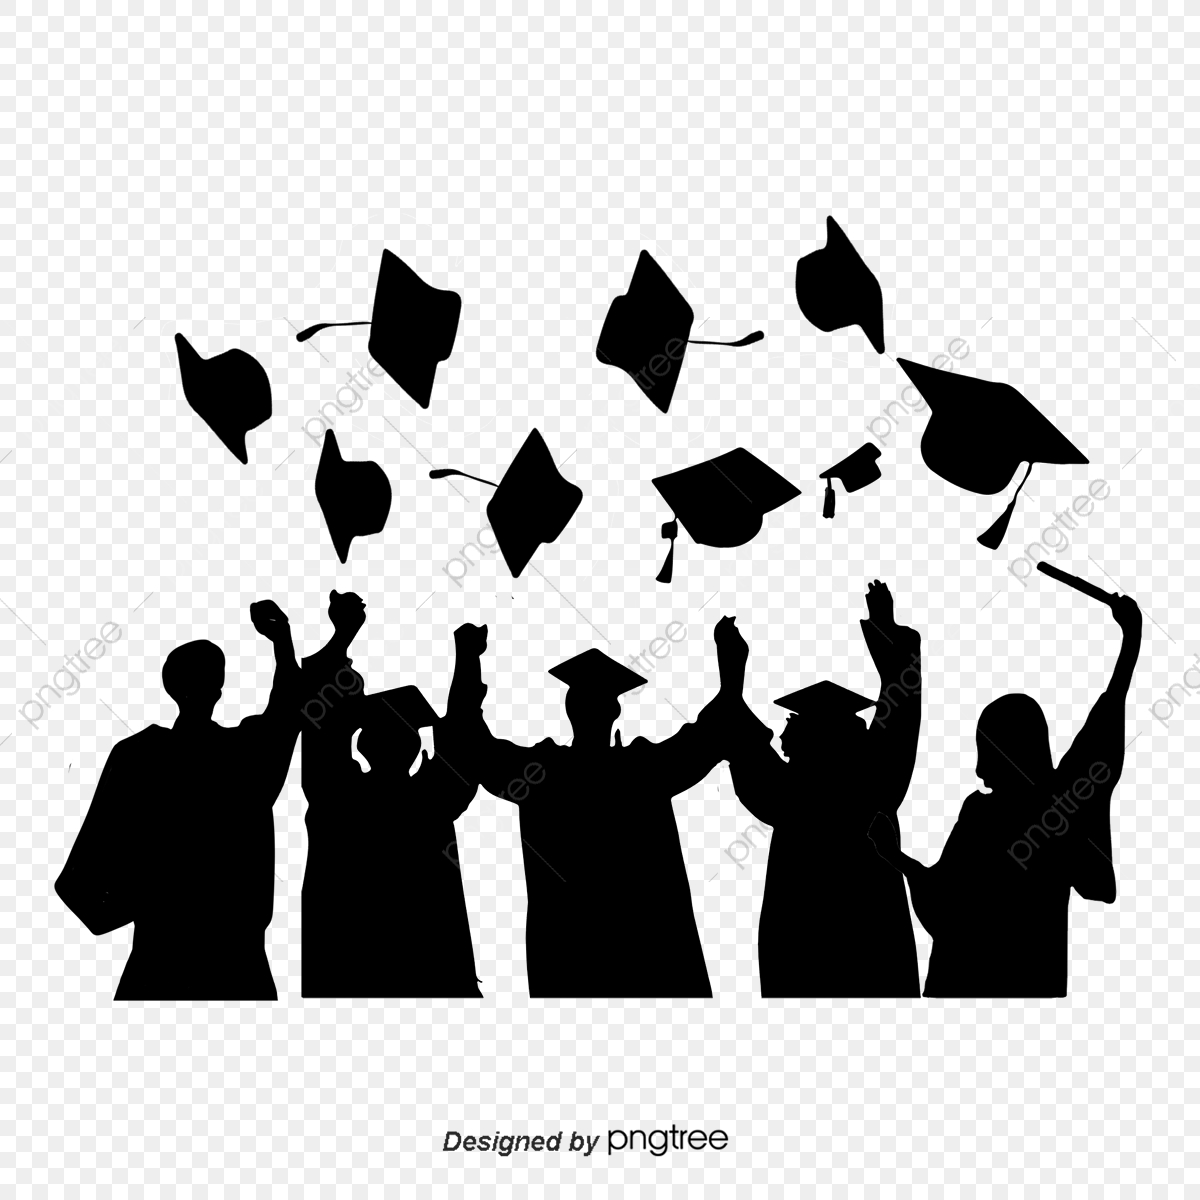 silhouettes of graduation caps scattered by students  silhouette  bachelor cap  student png